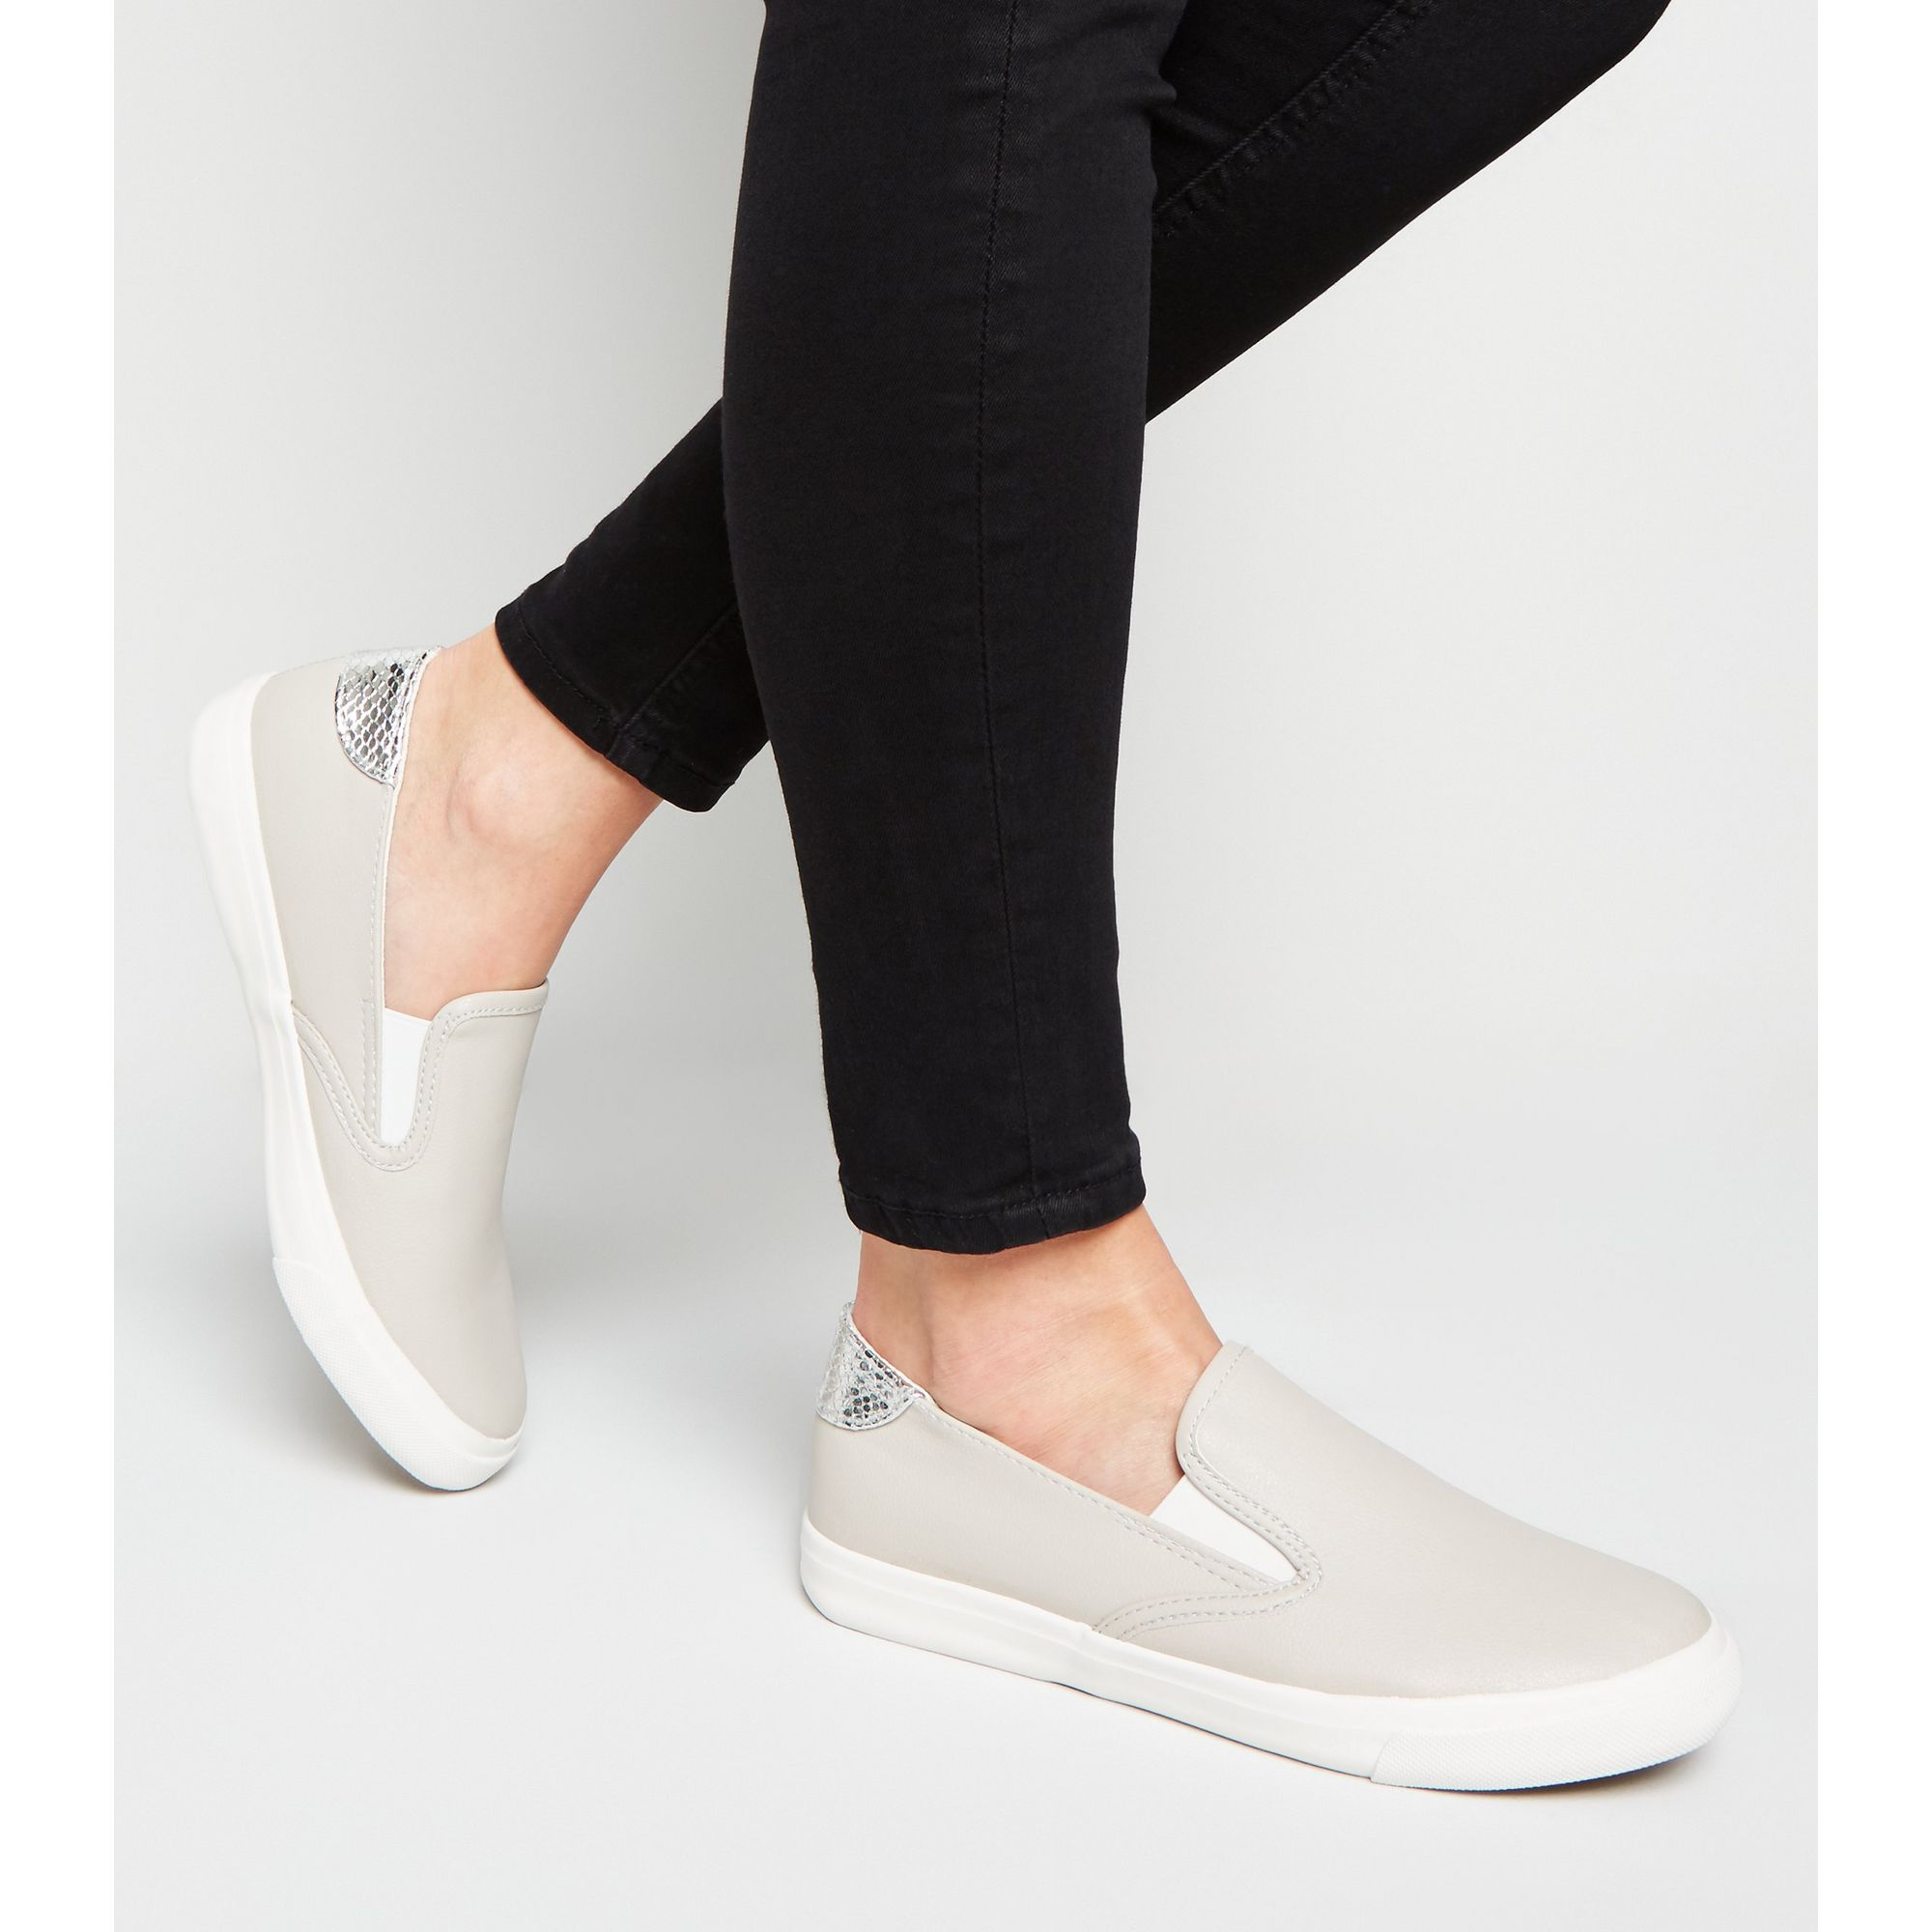 New-Look-Wide-Fit-Leather-Look-Slip-On-Trainers thumbnail 8